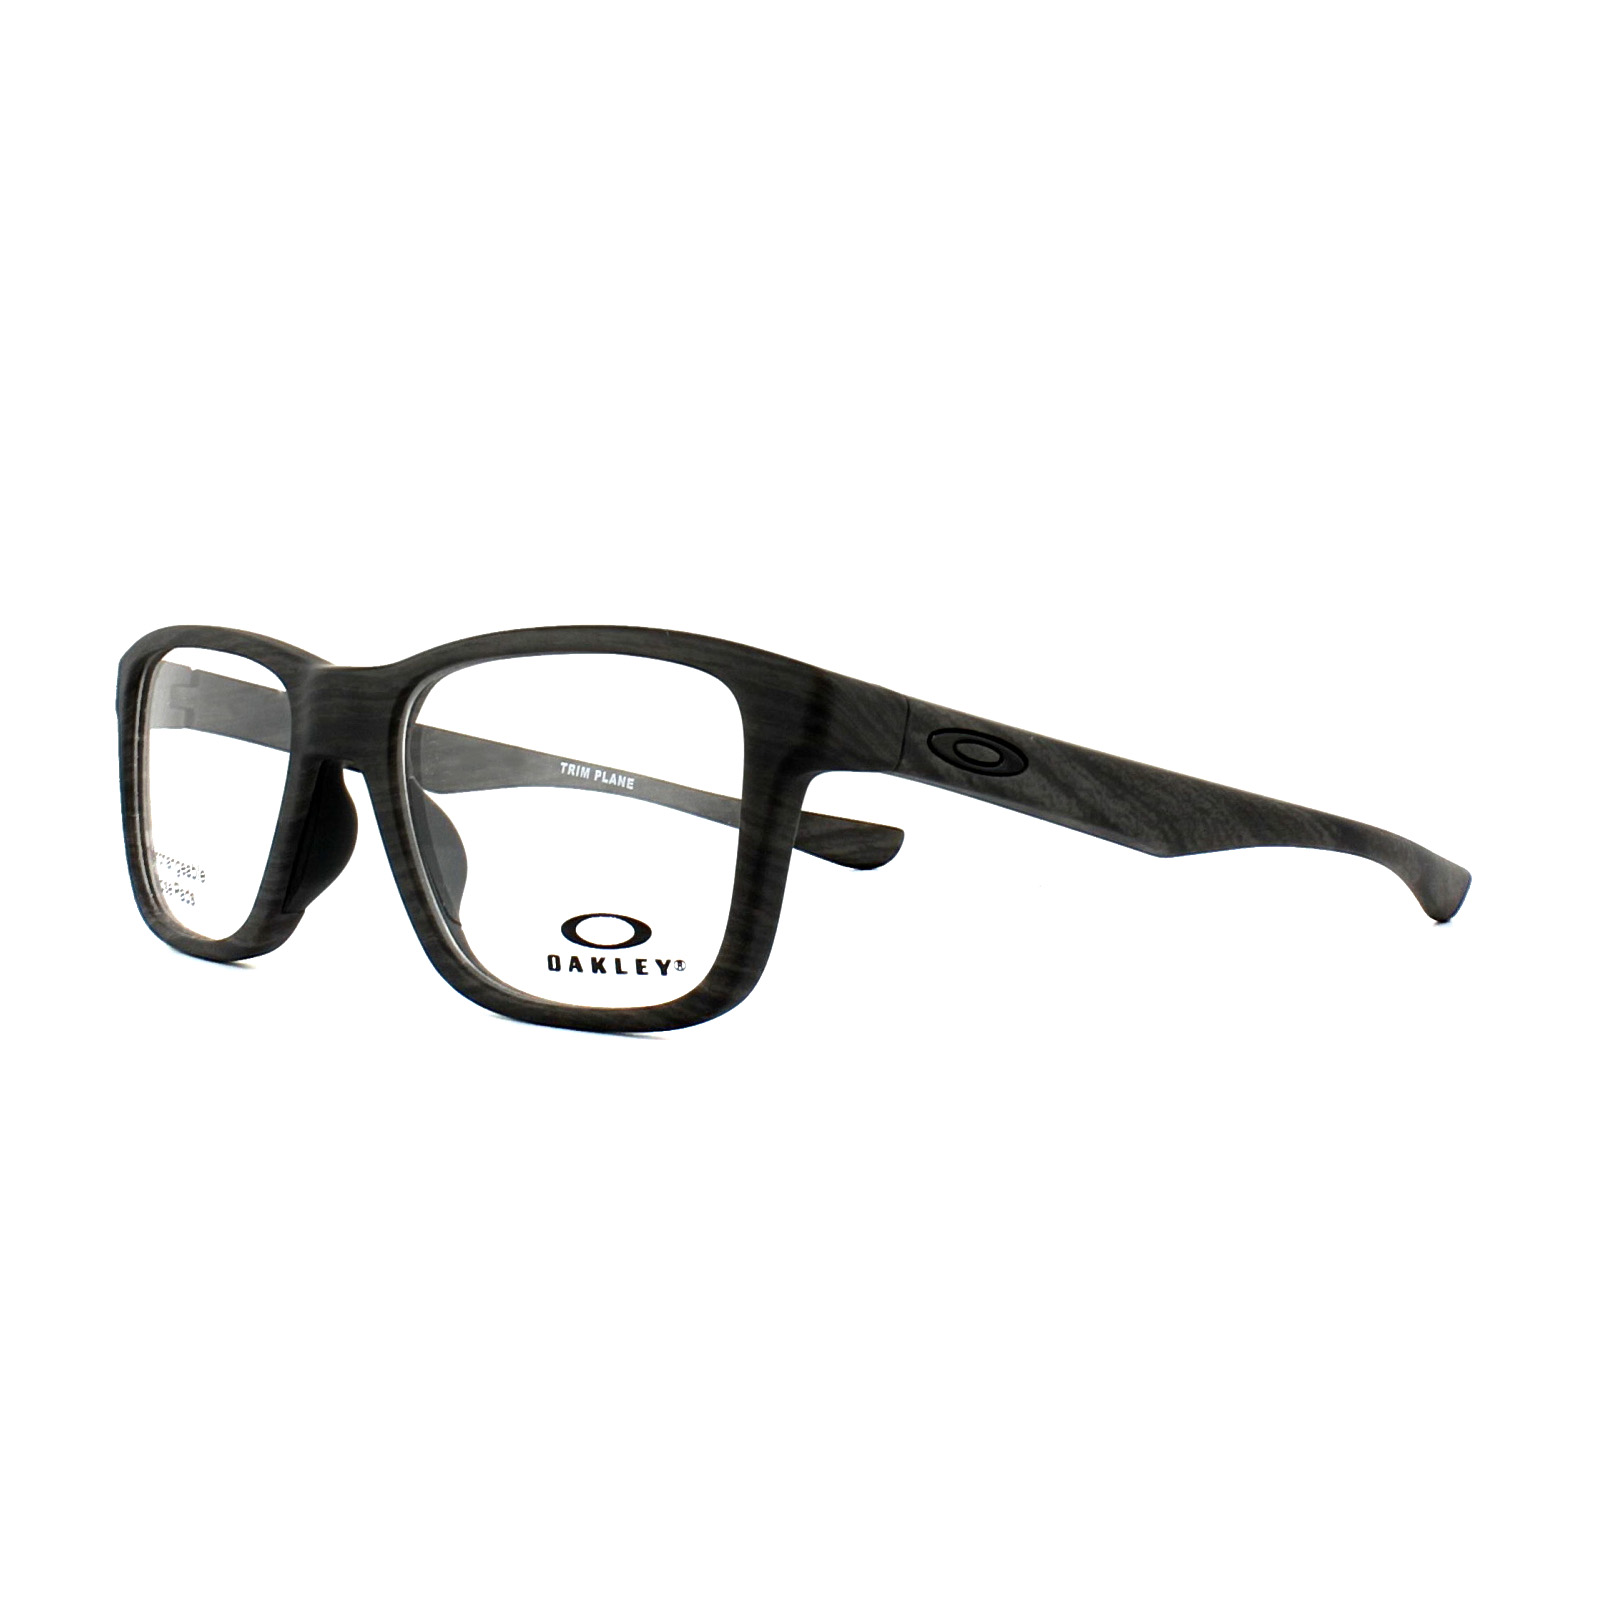 85db6fc0dc51 Sentinel Oakley Glasses Frames Trim Plane OX8107-02 Polished Black 53mm Mens